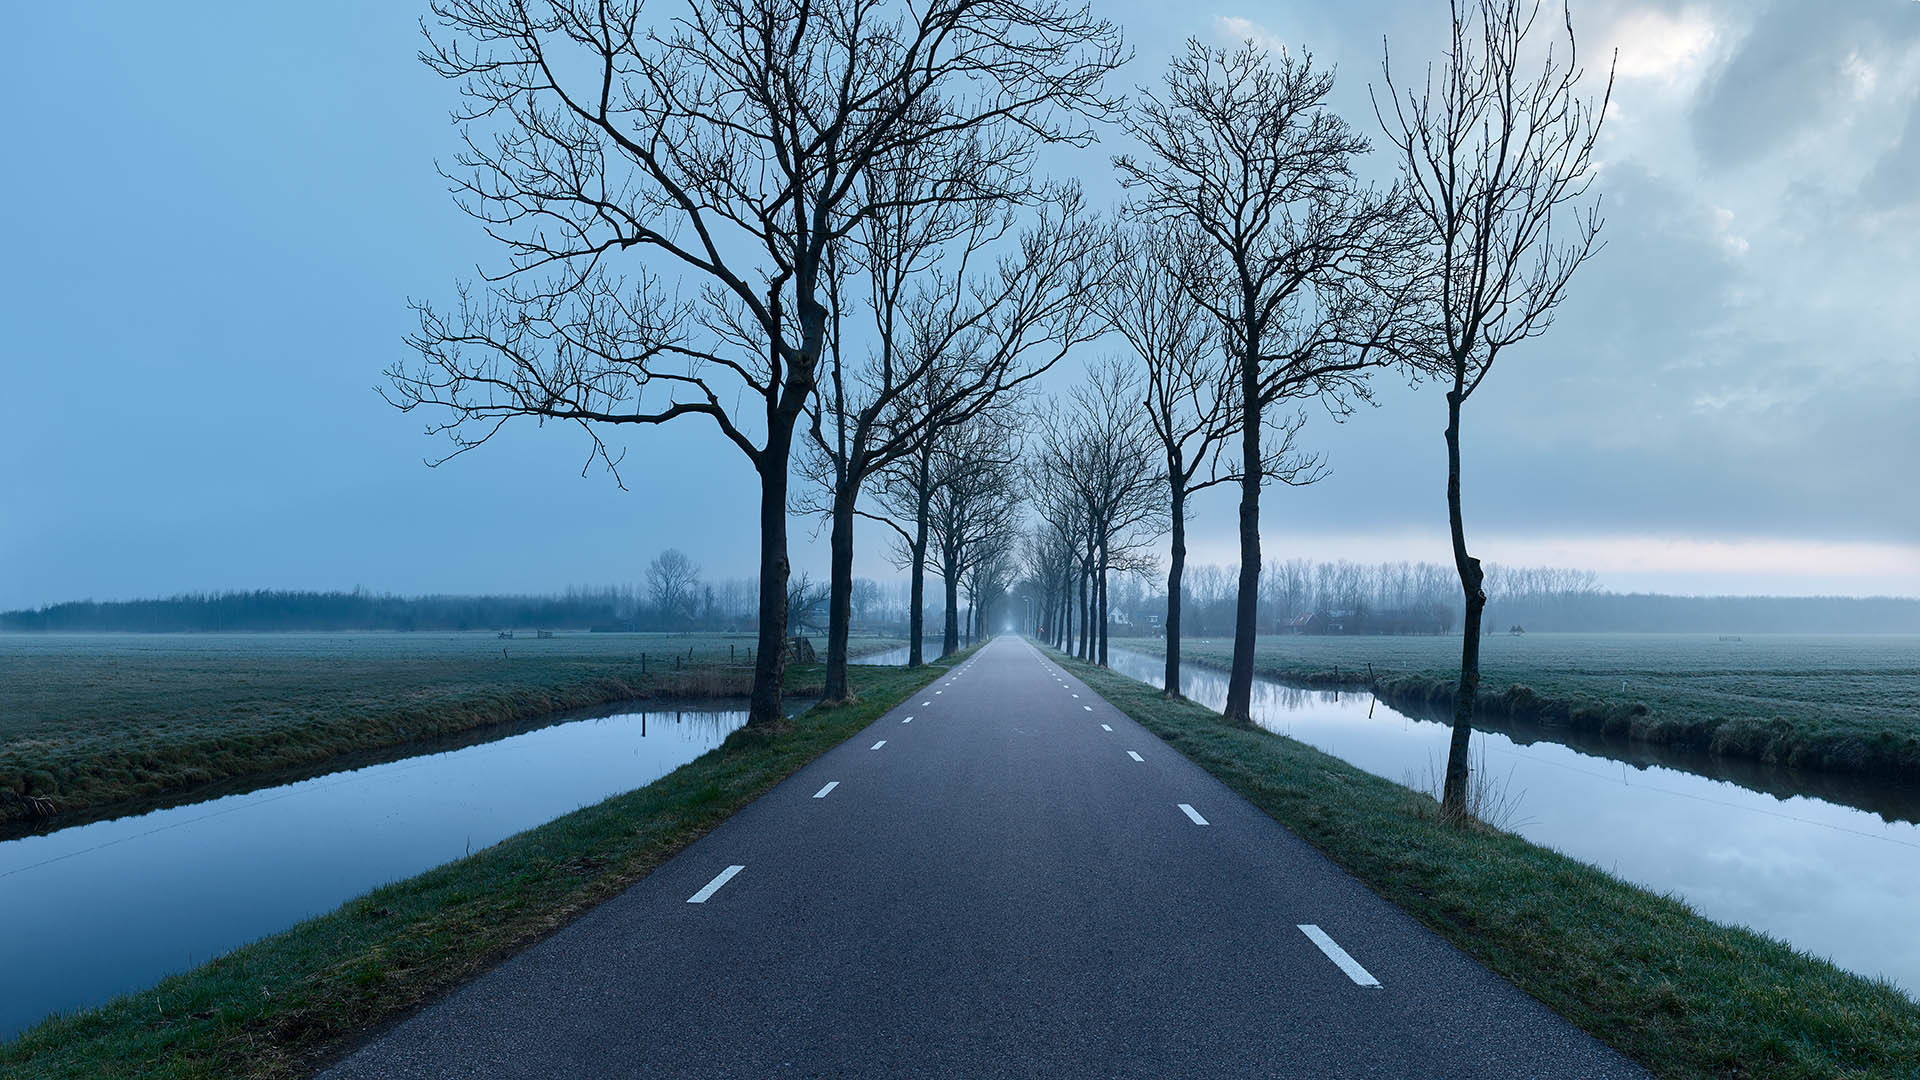 Foggy road in countryside in twilight